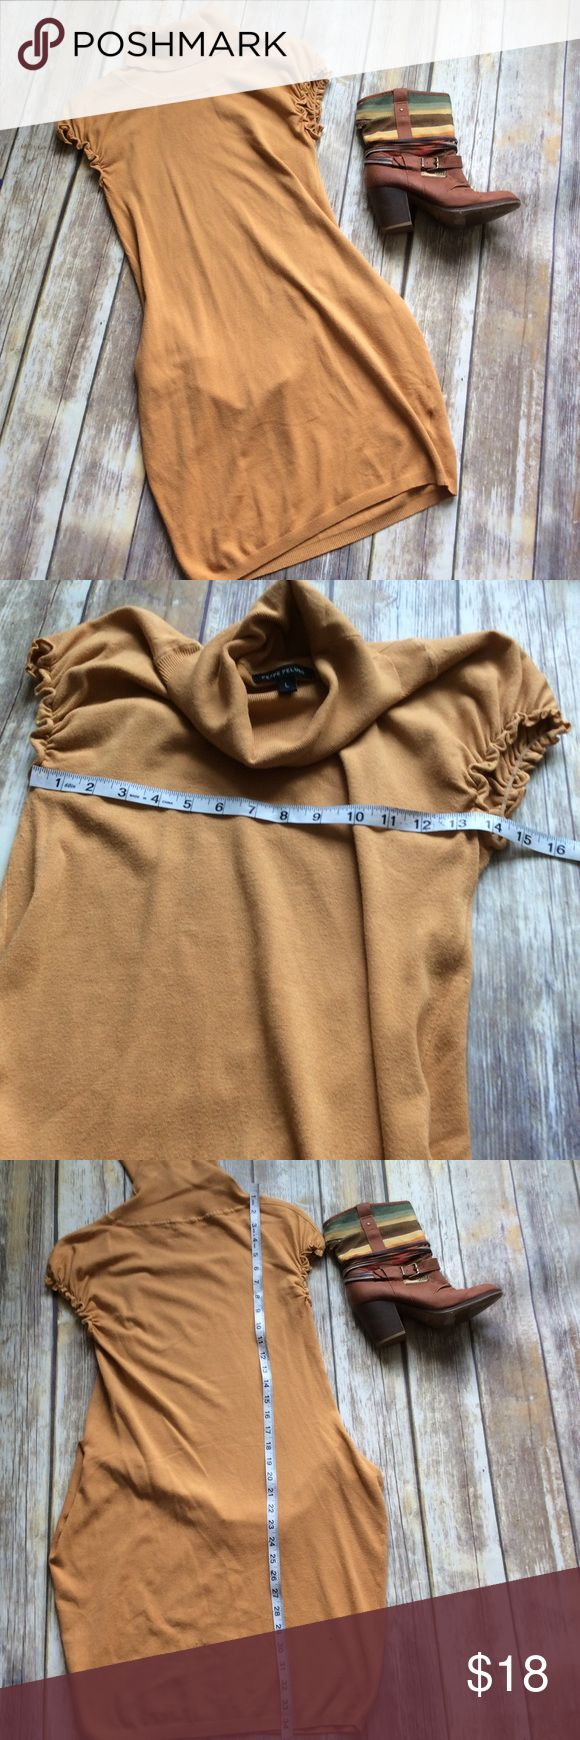 Peppe Peluso Sweater dress sz L Gently used mustard yellow sweater dress with a turtleneck and short sleeves. Looks great paired with Jean jacket leggings, and boots. ❌no trades, holds, or lowball offers. ✅Clean and smoke free home, quick shipping, bundle discount, always! 🎁Free gift with $15+ bundle. Peppe Peluso Dresses Mini